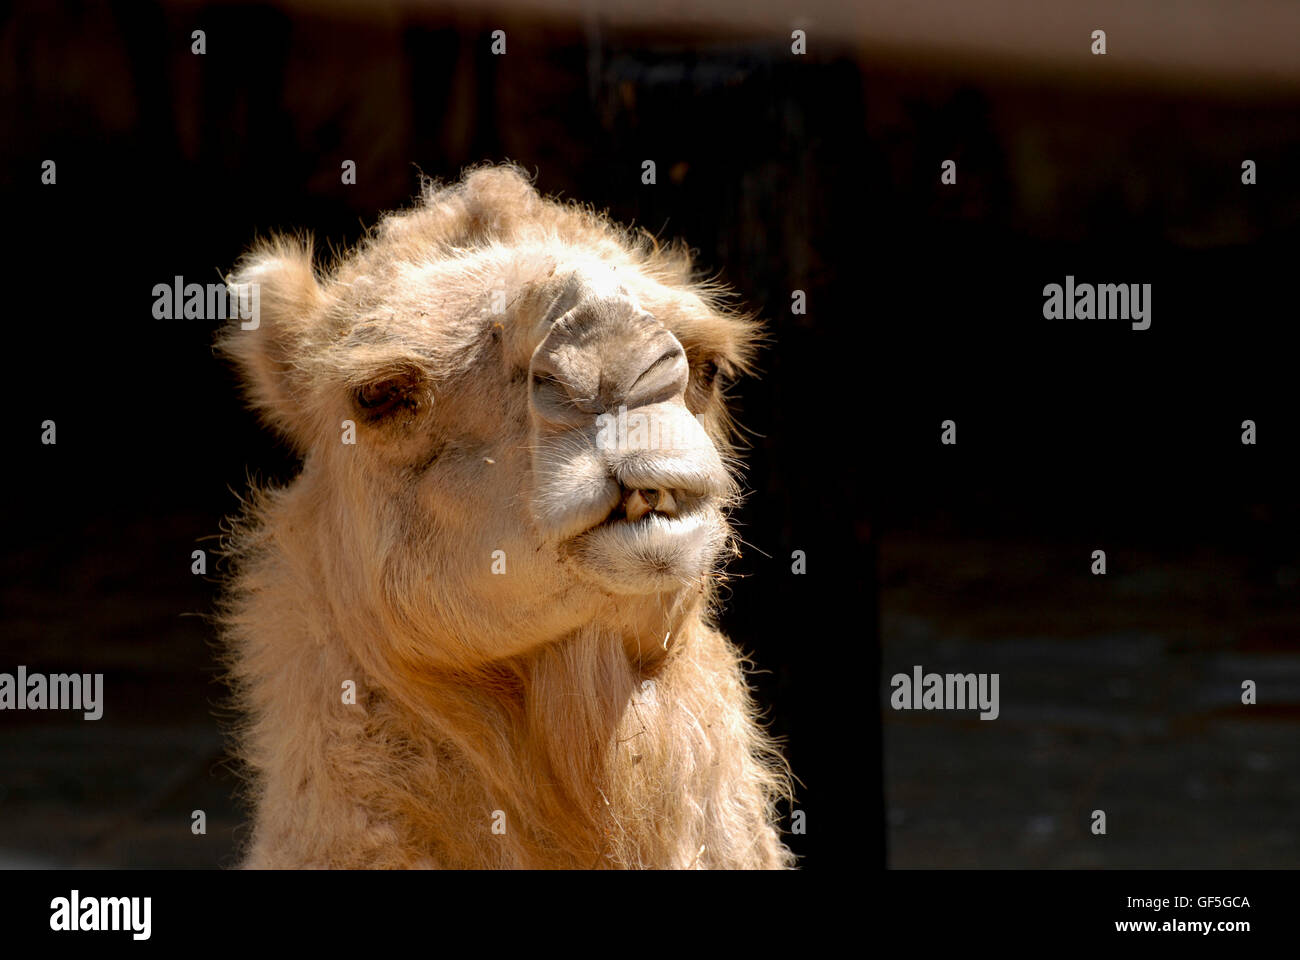 Close up of a head of a camel on black background facing camera - Stock Image